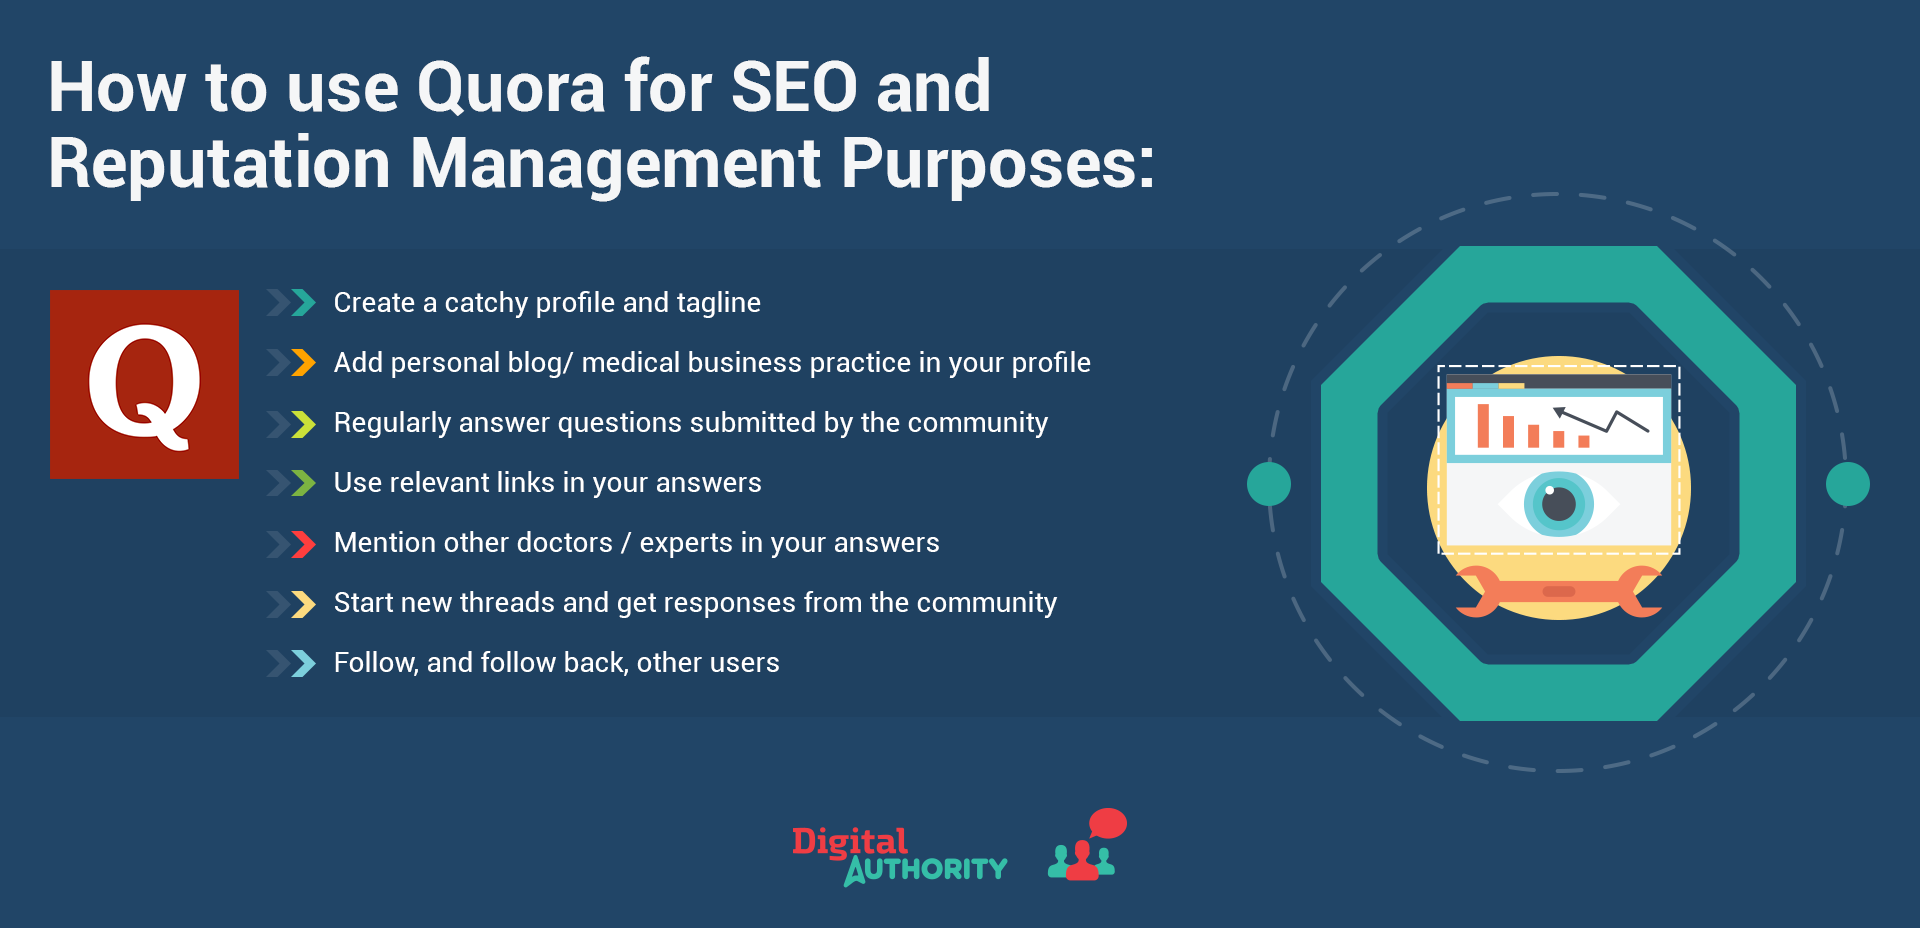 Graphic explaining how to use Quora for SEO and Reputation Management Purposes